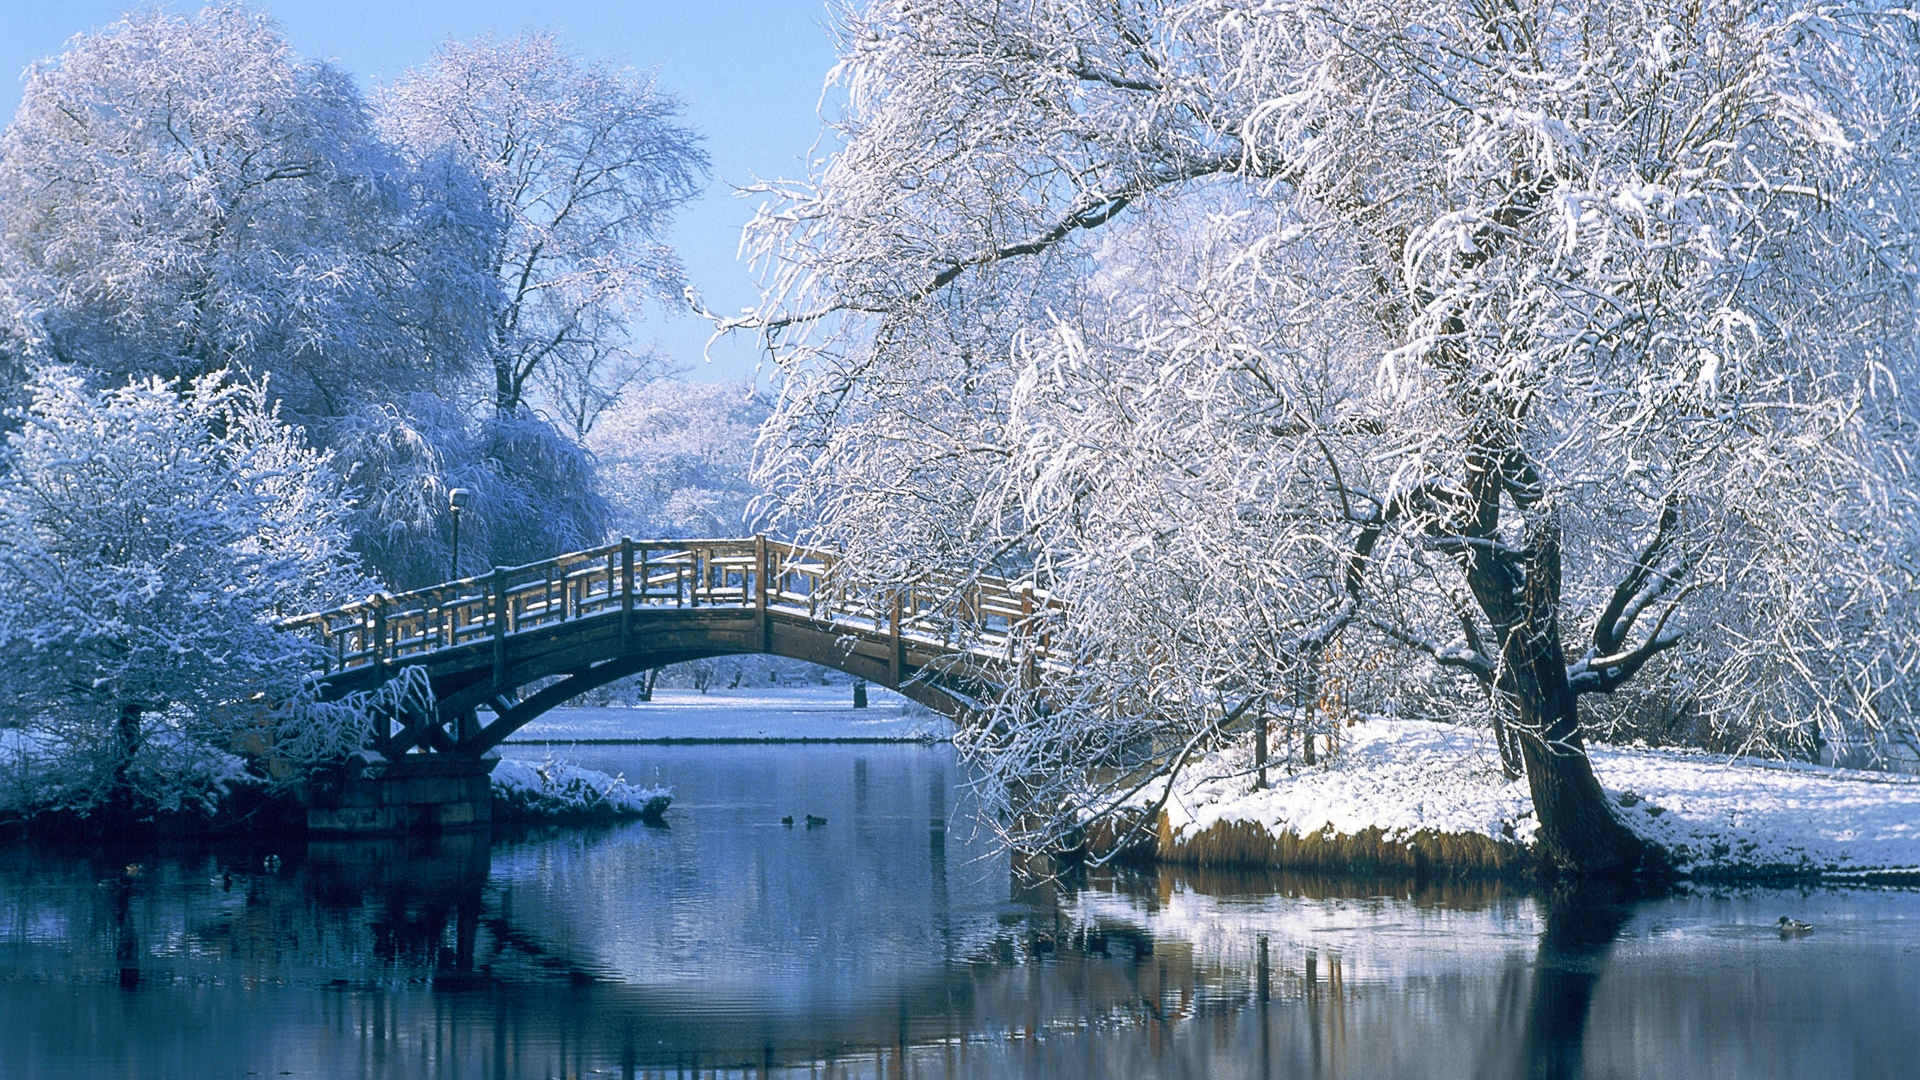 Winter Wallpaper 1920x1080 Winter Wallpapers Best Wallpapers